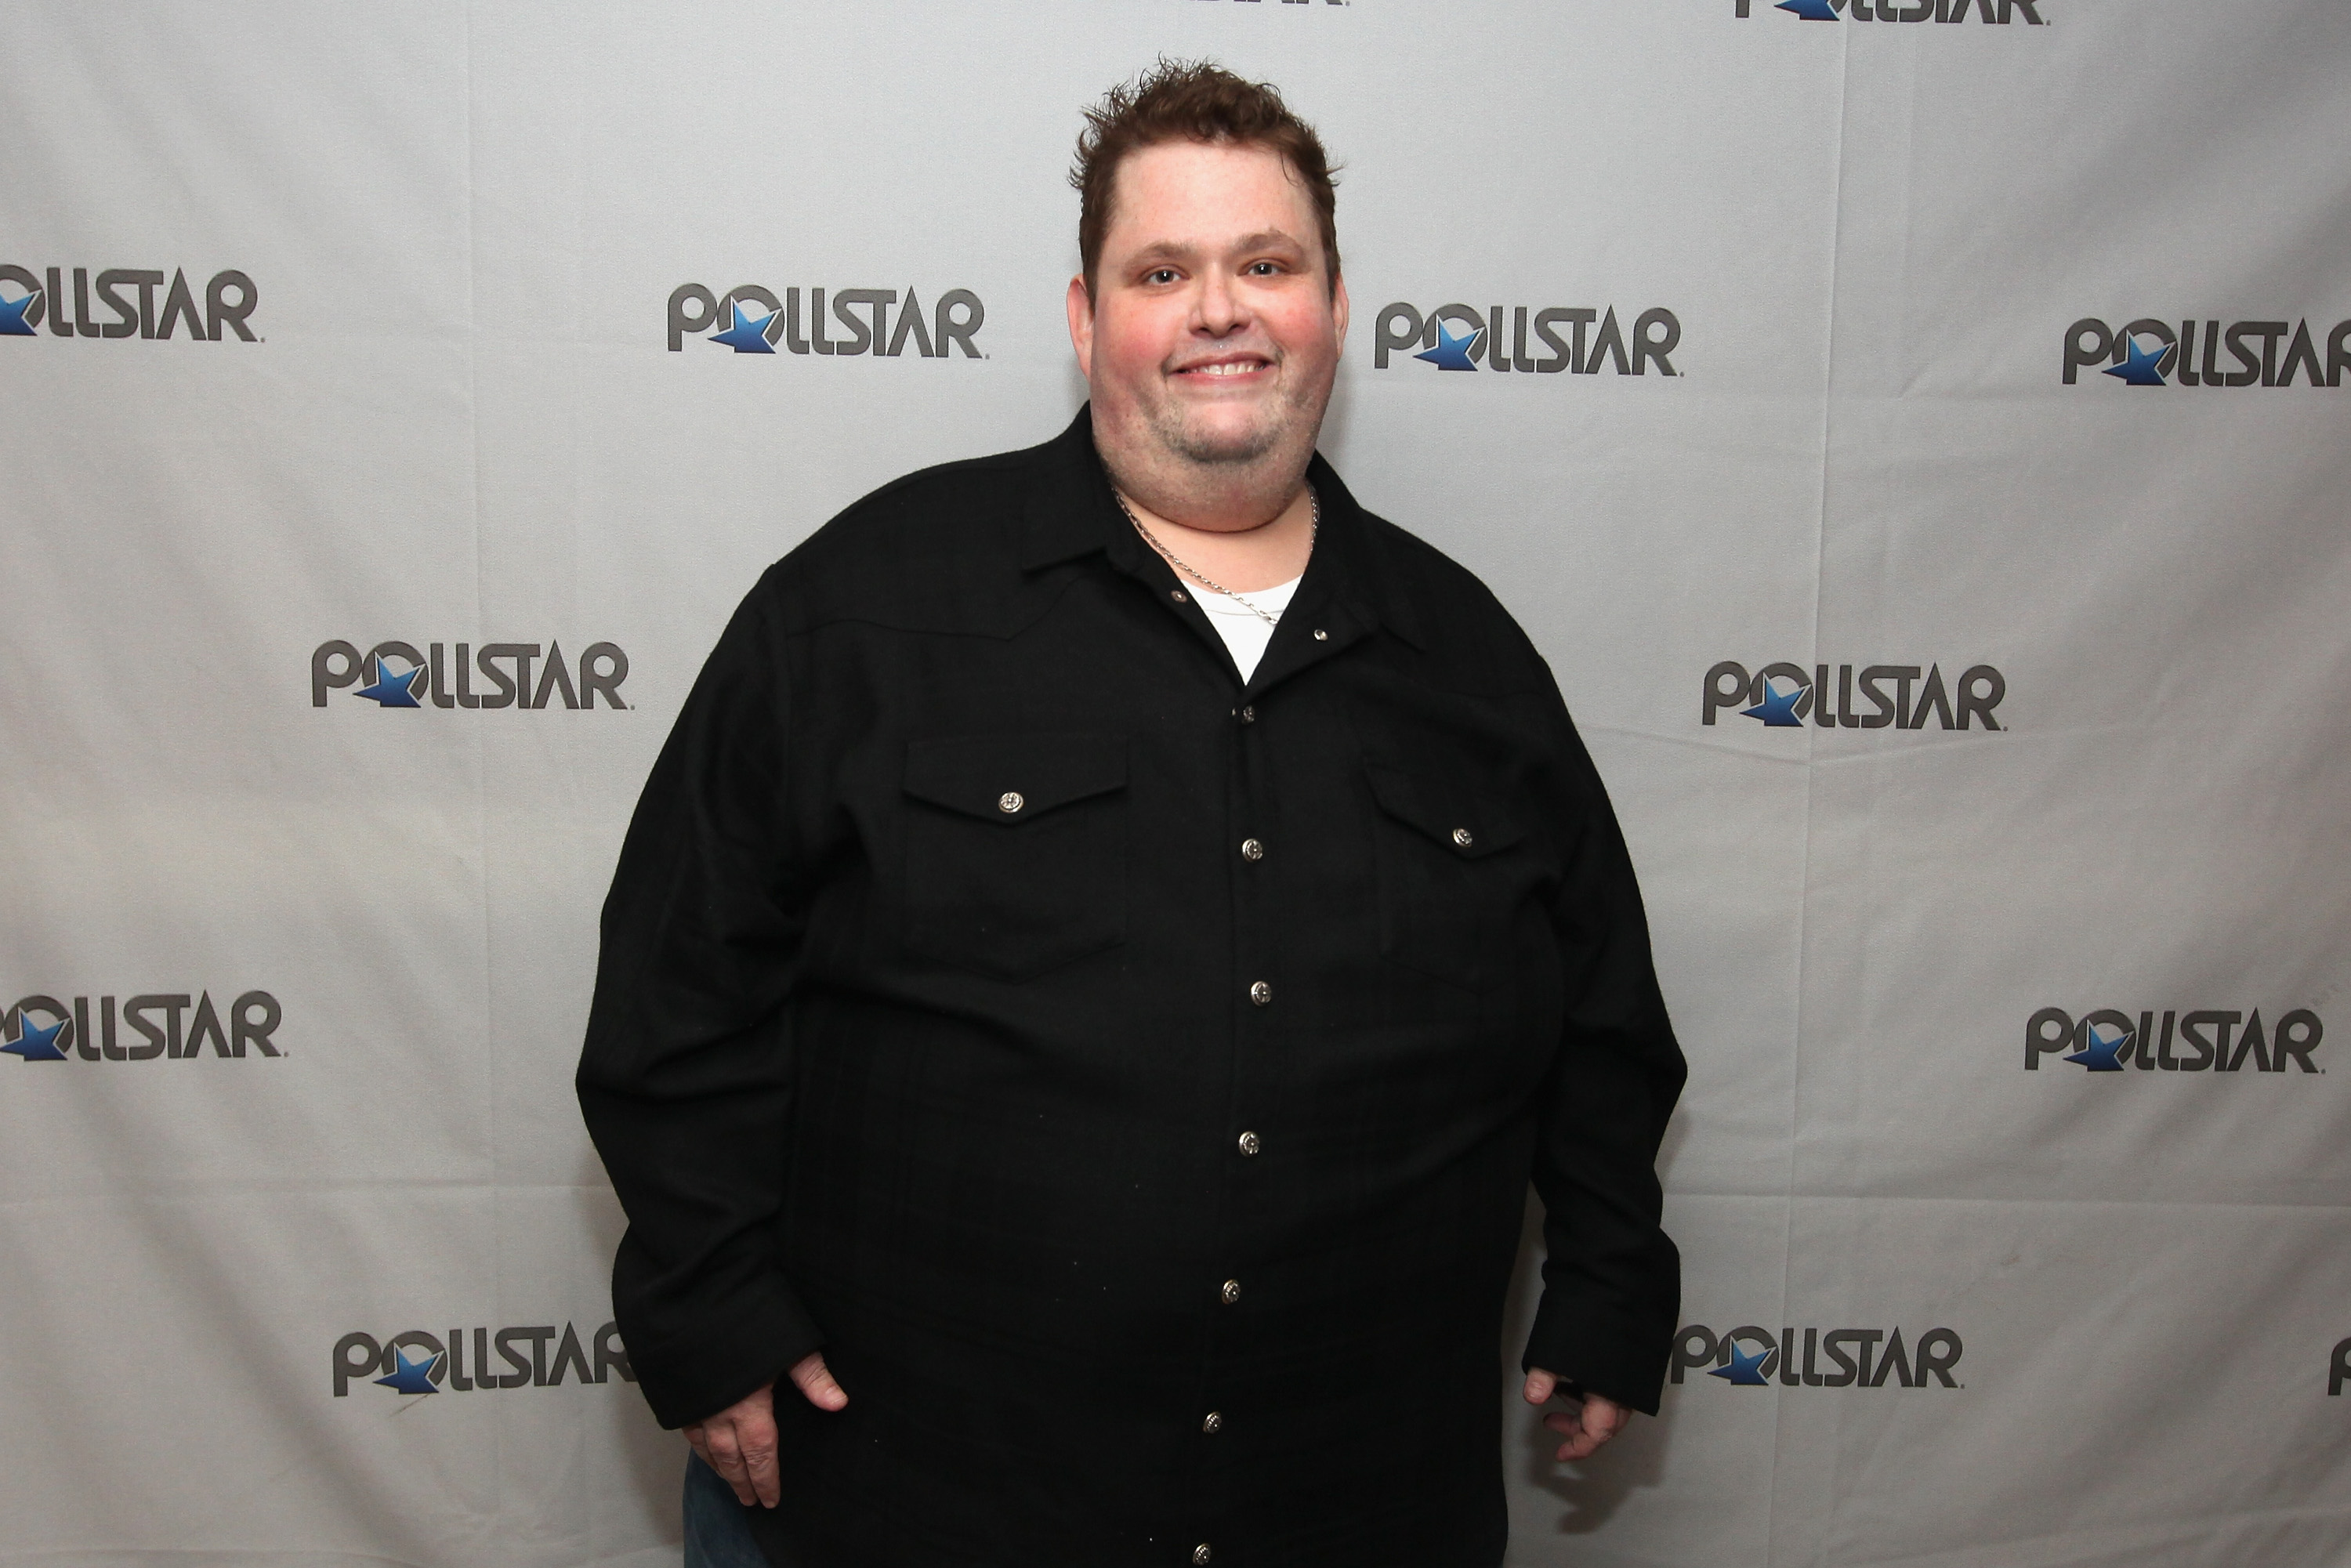 Host Ralphie May poses backstage during the 26th Annual PollStar Awards at Ryman Auditorium on February 21, 2015 in Nashville, Tennessee.